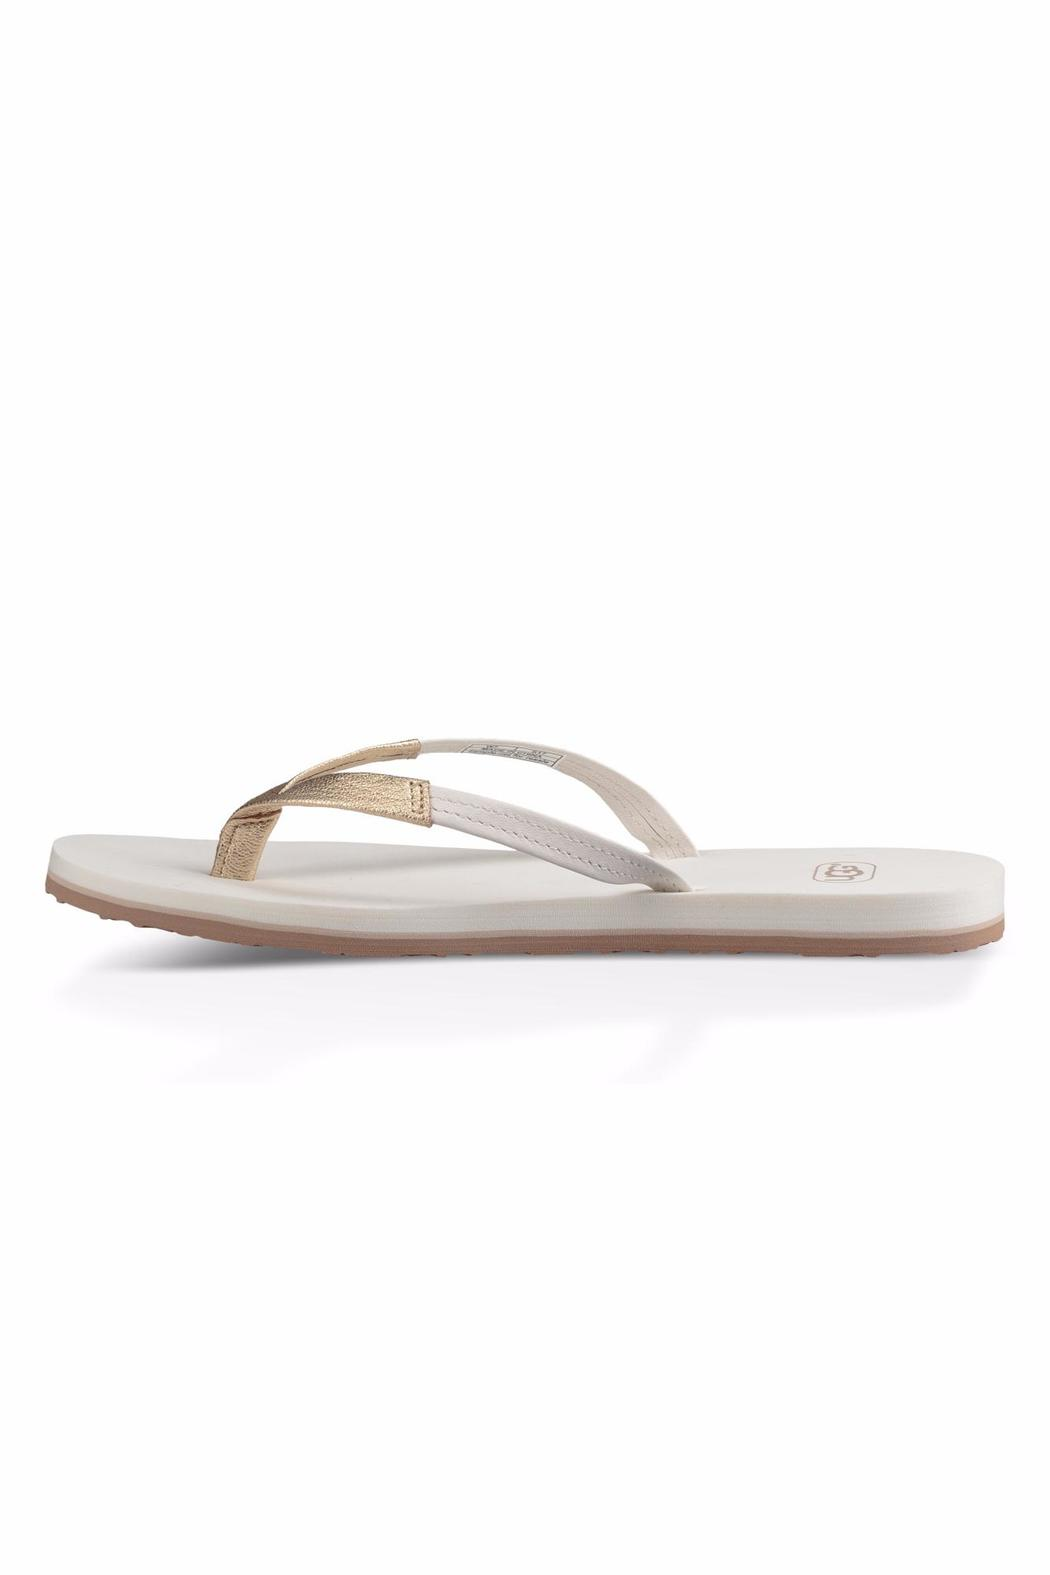 Ugg Australia Ugg Magnolia Flip Flop From Los Angeles By -8897